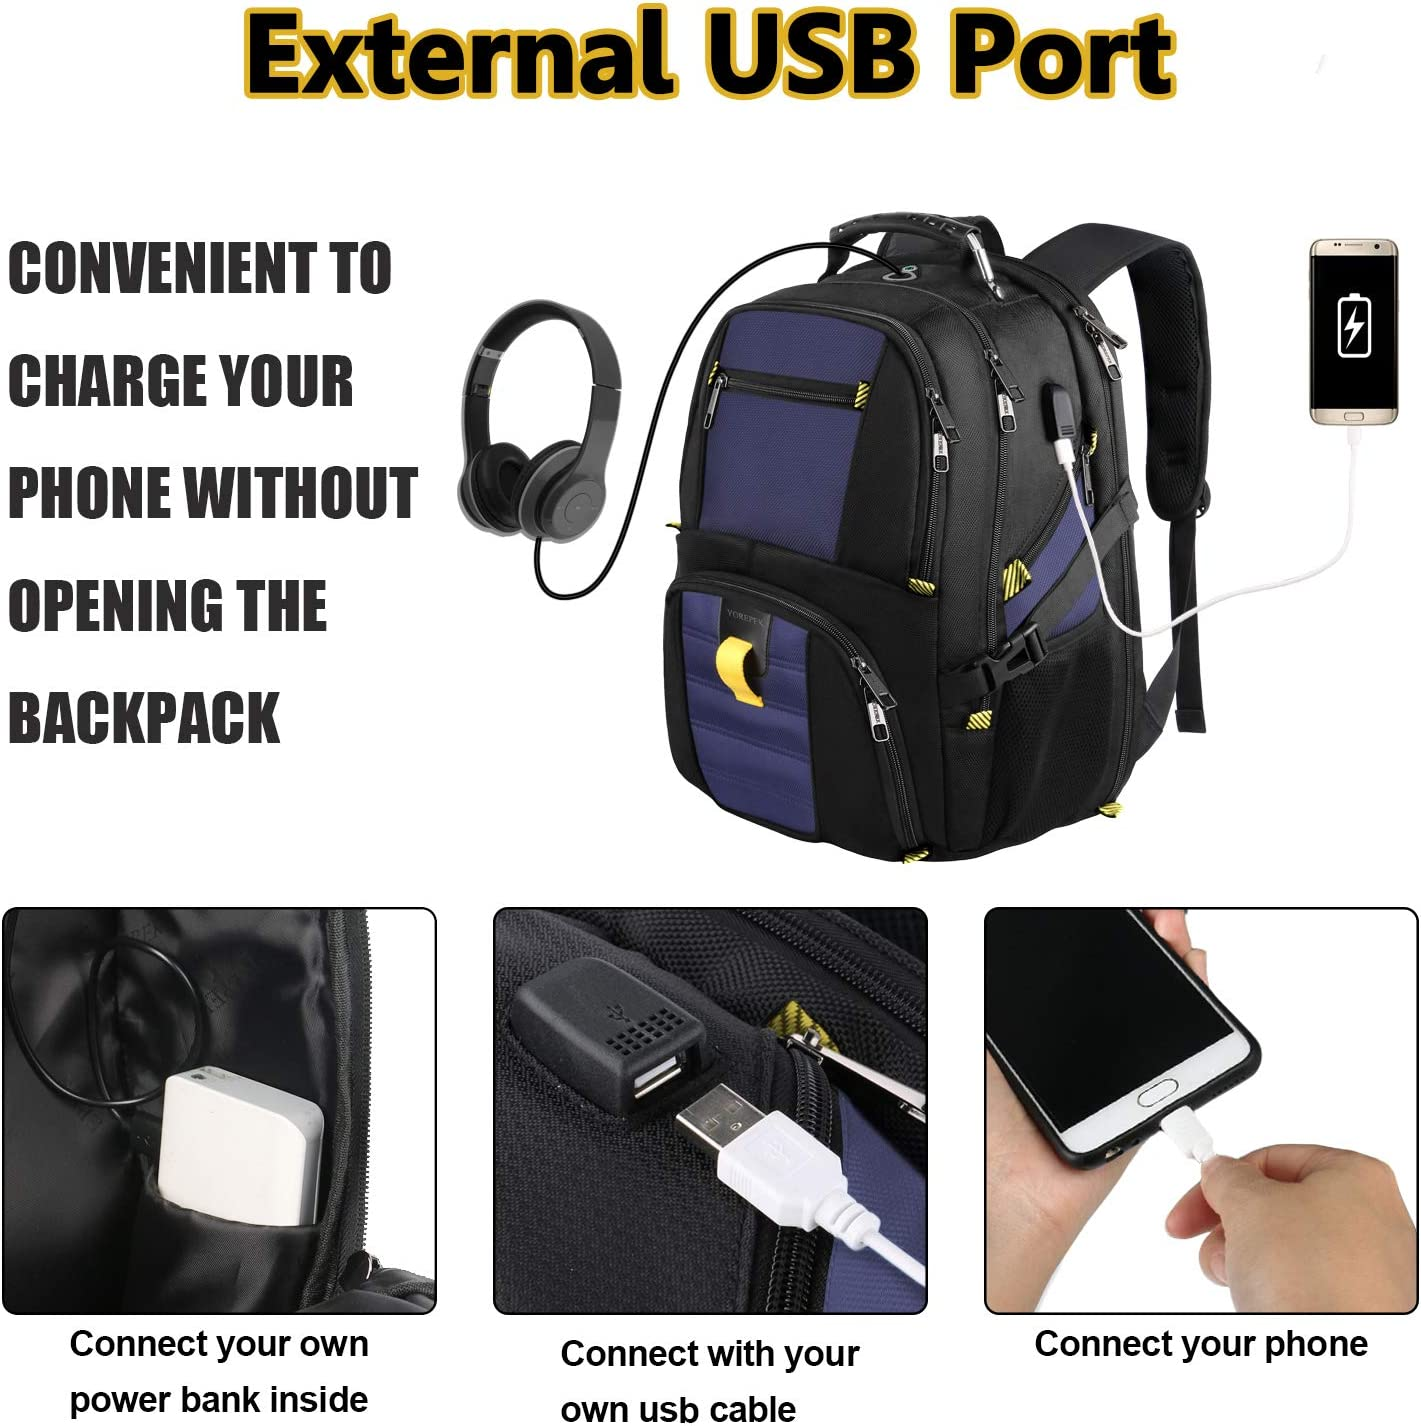 Backpacks for Men, Extra Large Travel Laptop Backpack Gifts for Women Men with USB Charging Port,TSA Friendly Business Computer Bag College High School Bookbags Fit 17 Inch Laptops 45L,Black: Electronics